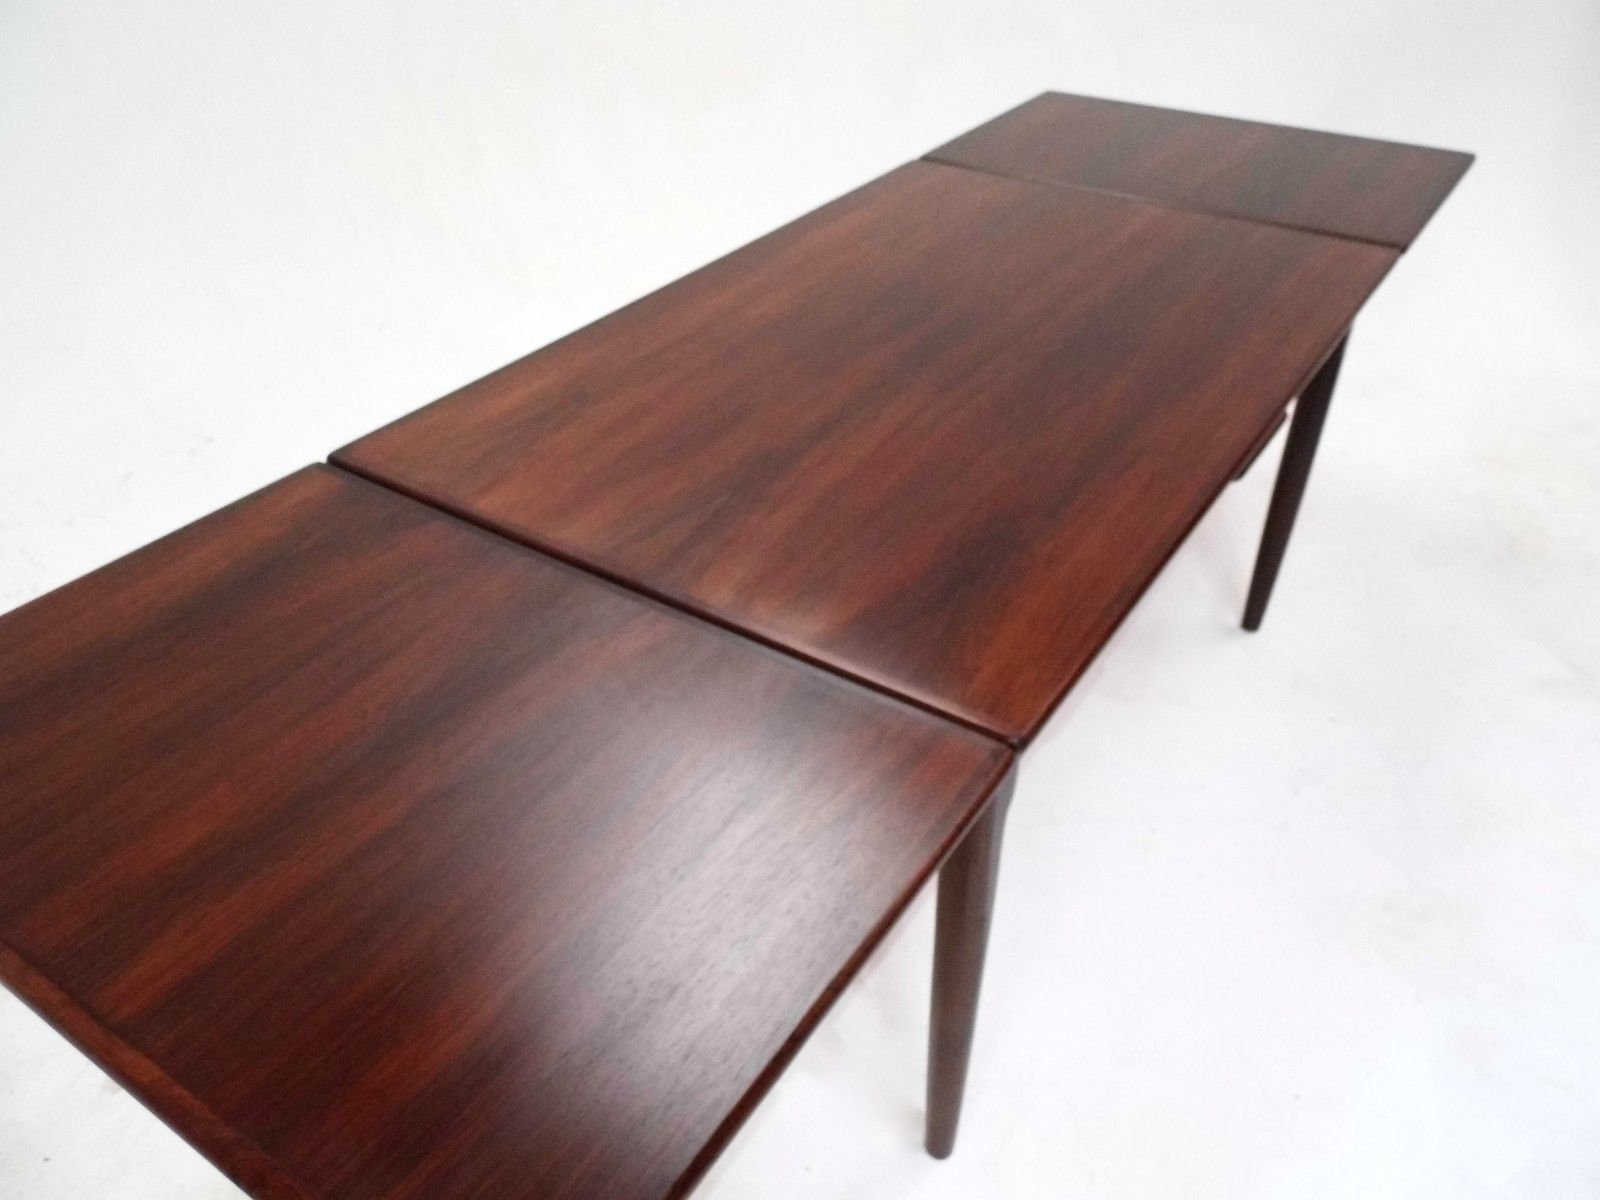 Mid Century Danish Rosewood Extendable Dining Table 1960s  : mid century danish rosewood extendable dining table 1960s 11 from www.pamono.com size 1600 x 1200 jpeg 133kB